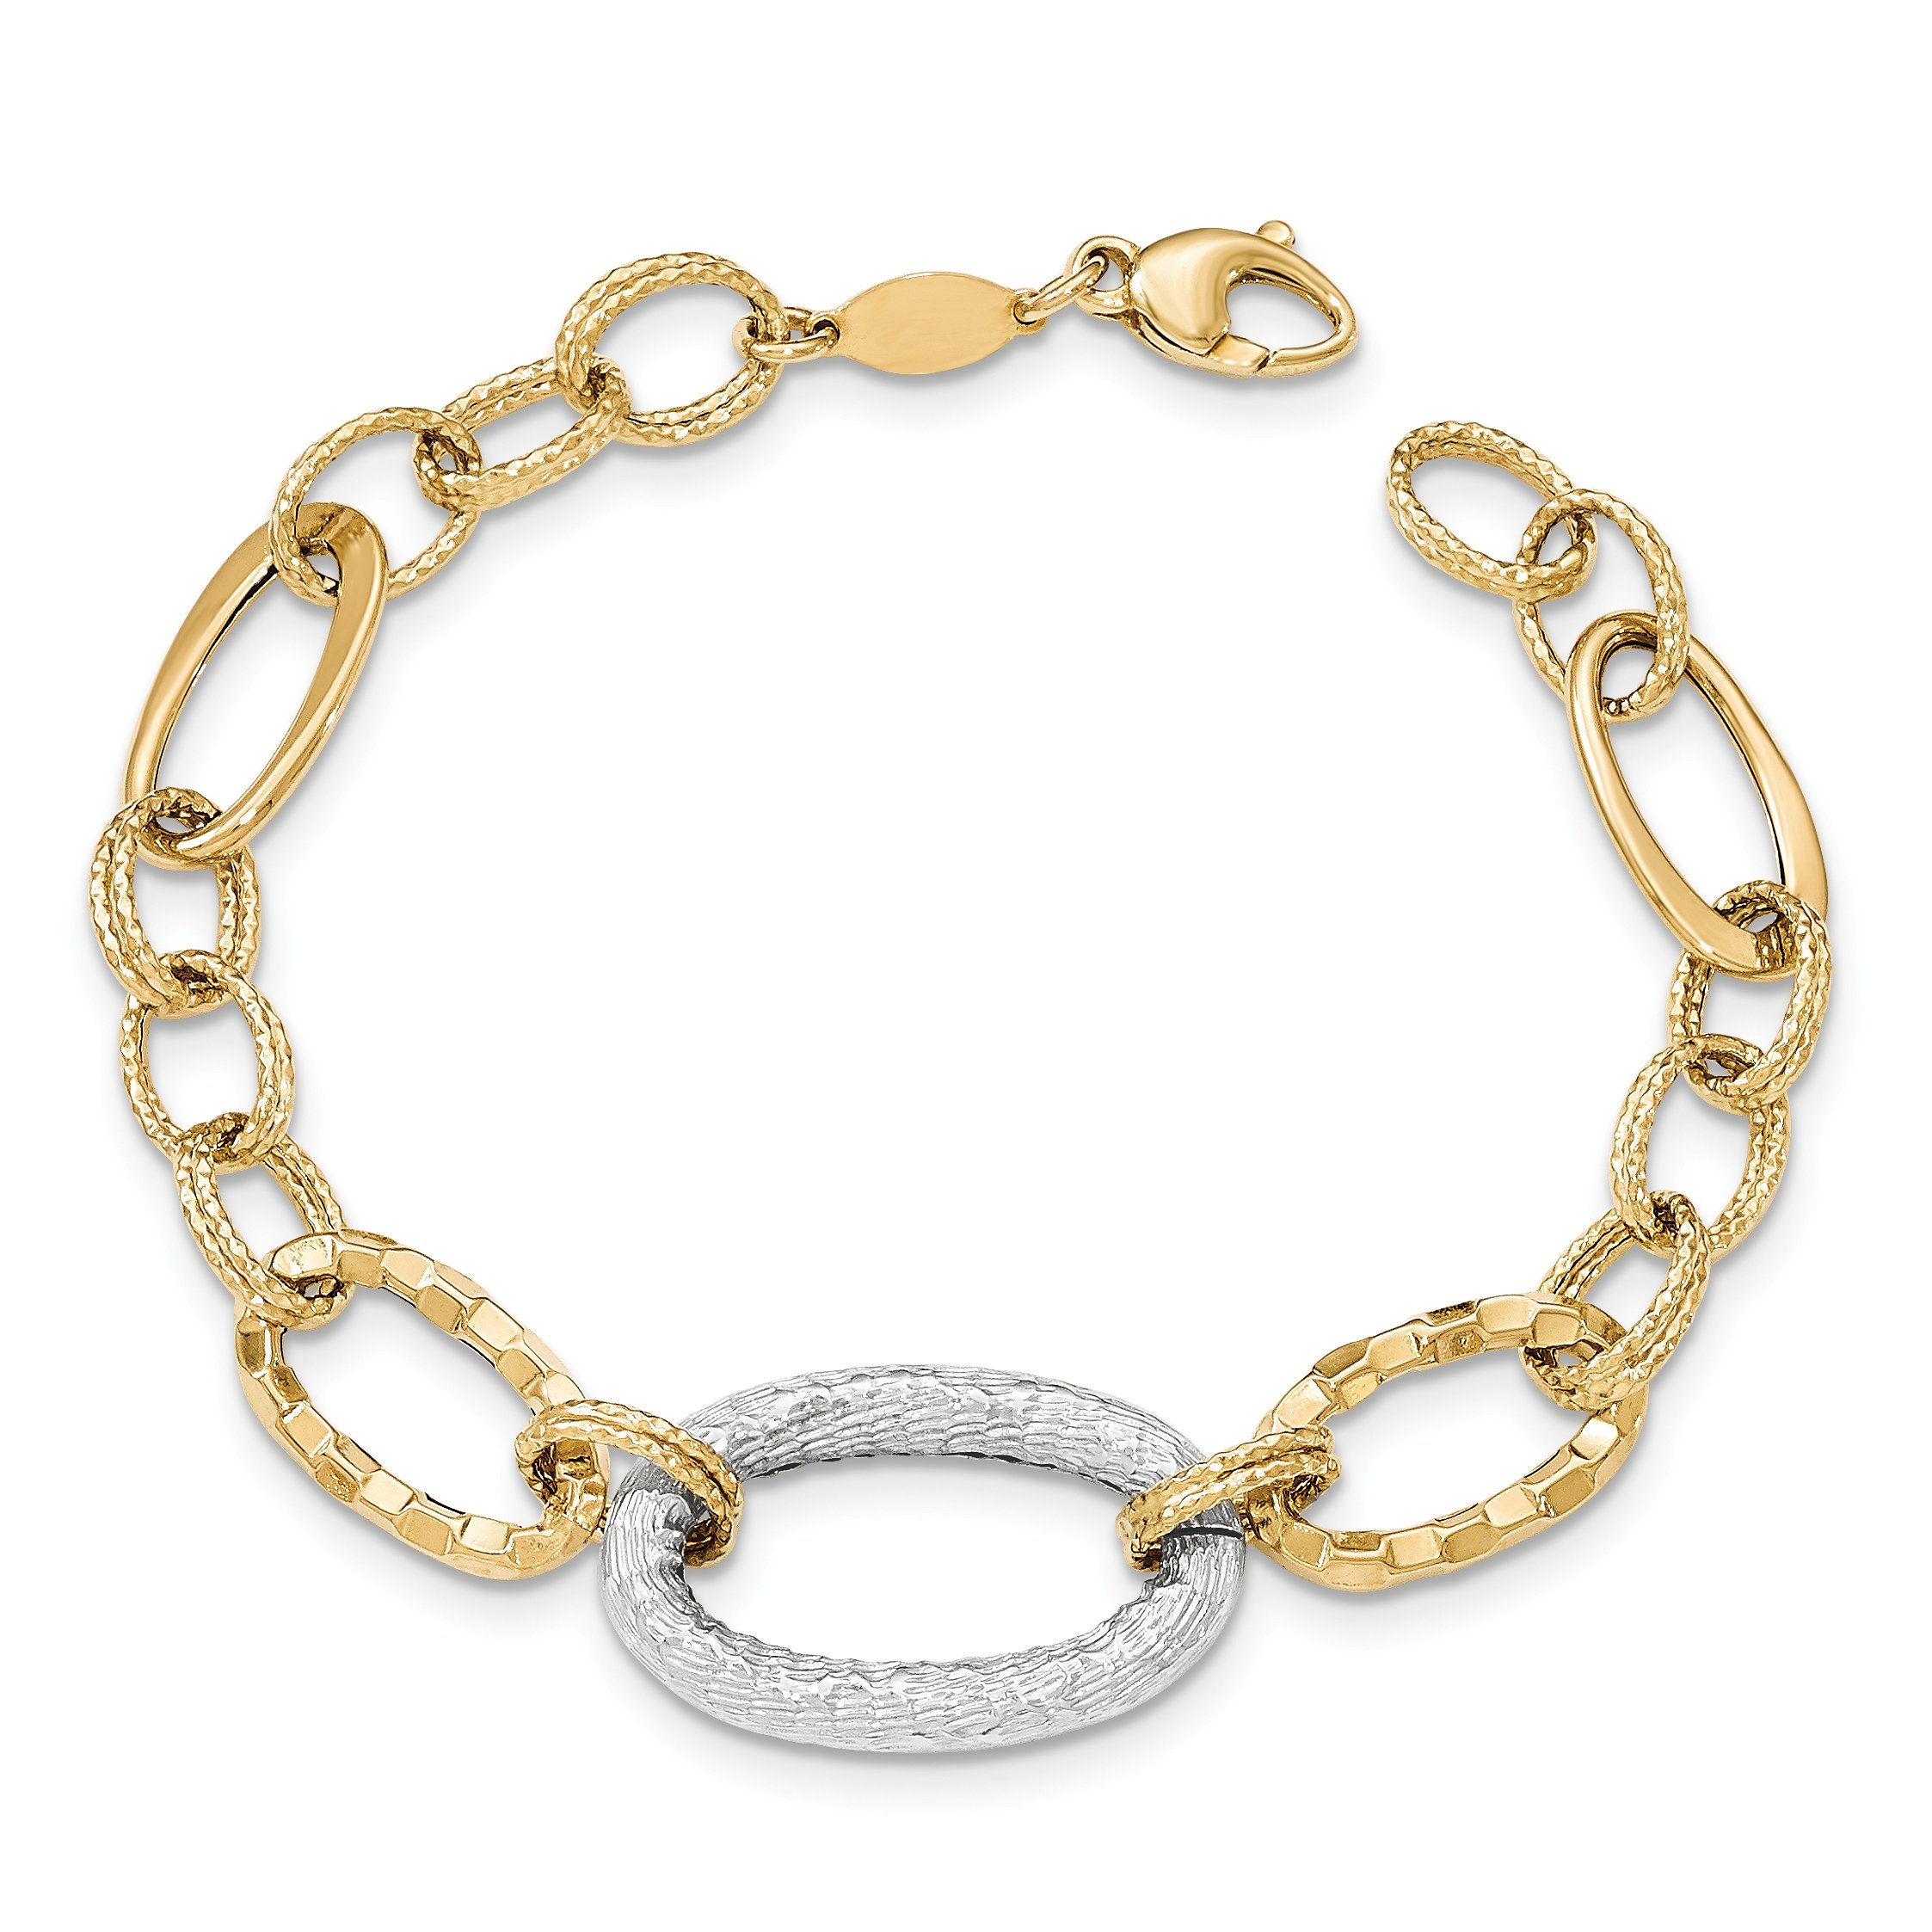 ICE CARATS 14k Two Tone Yellow Gold Textured Link Bracelet 7.50 Inch Fine Jewelry Gift Set For Women Heart